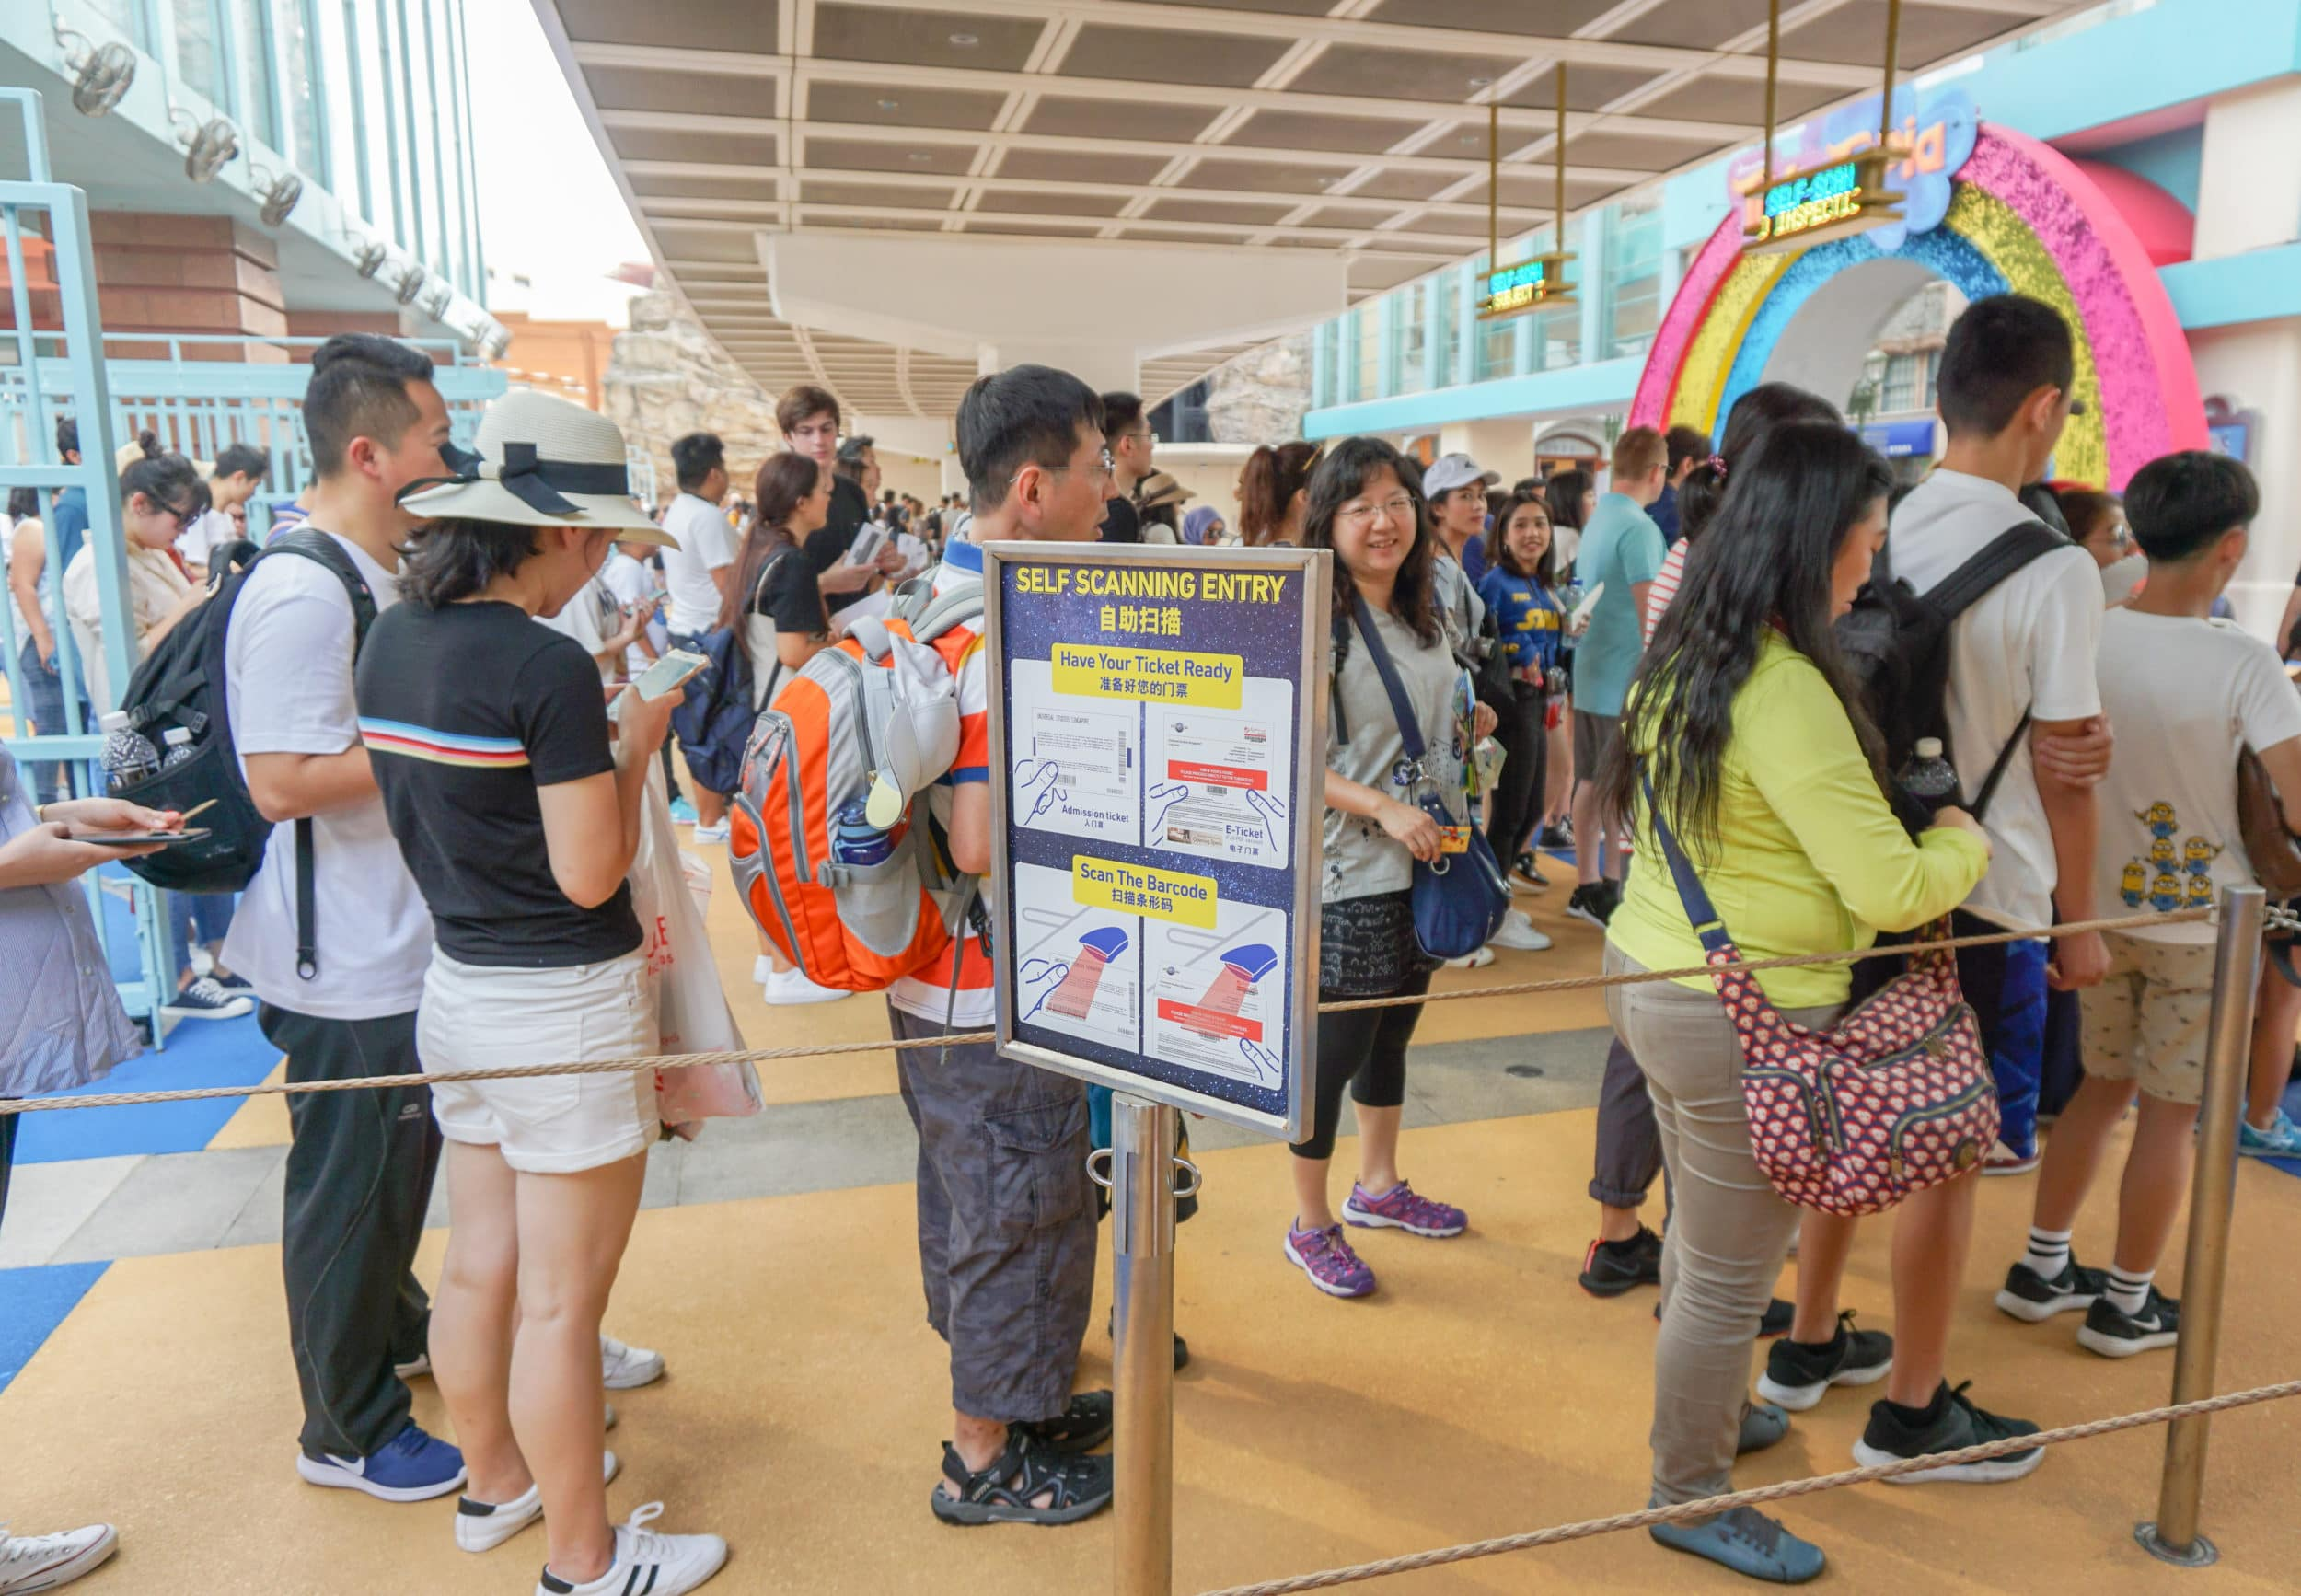 Entrance line for Universal Studios Singapore ticket holders